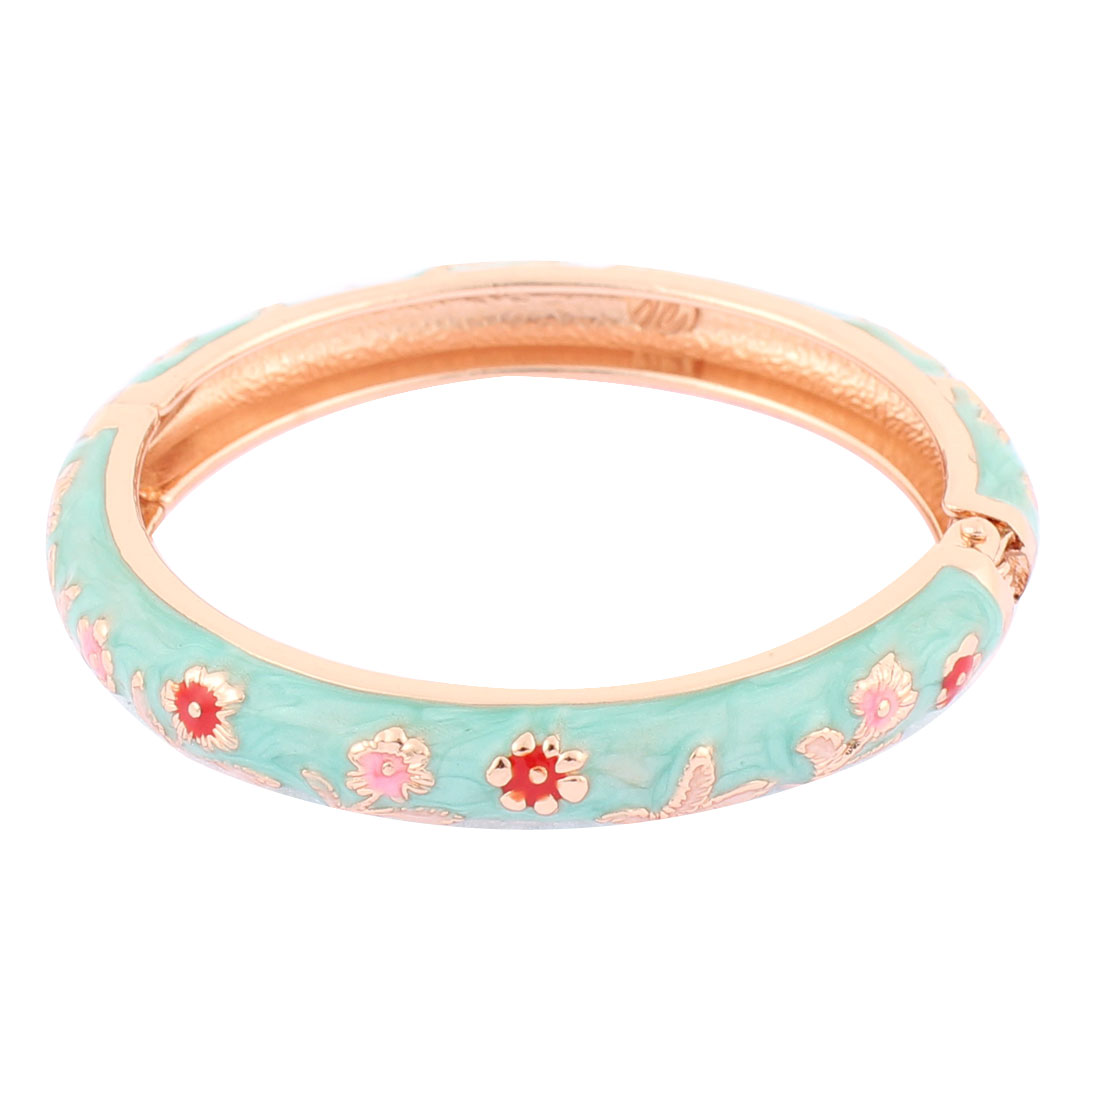 Girl Floral Carve Cuff Open Bracelet Bangle Jewelry Wedding Party Gift